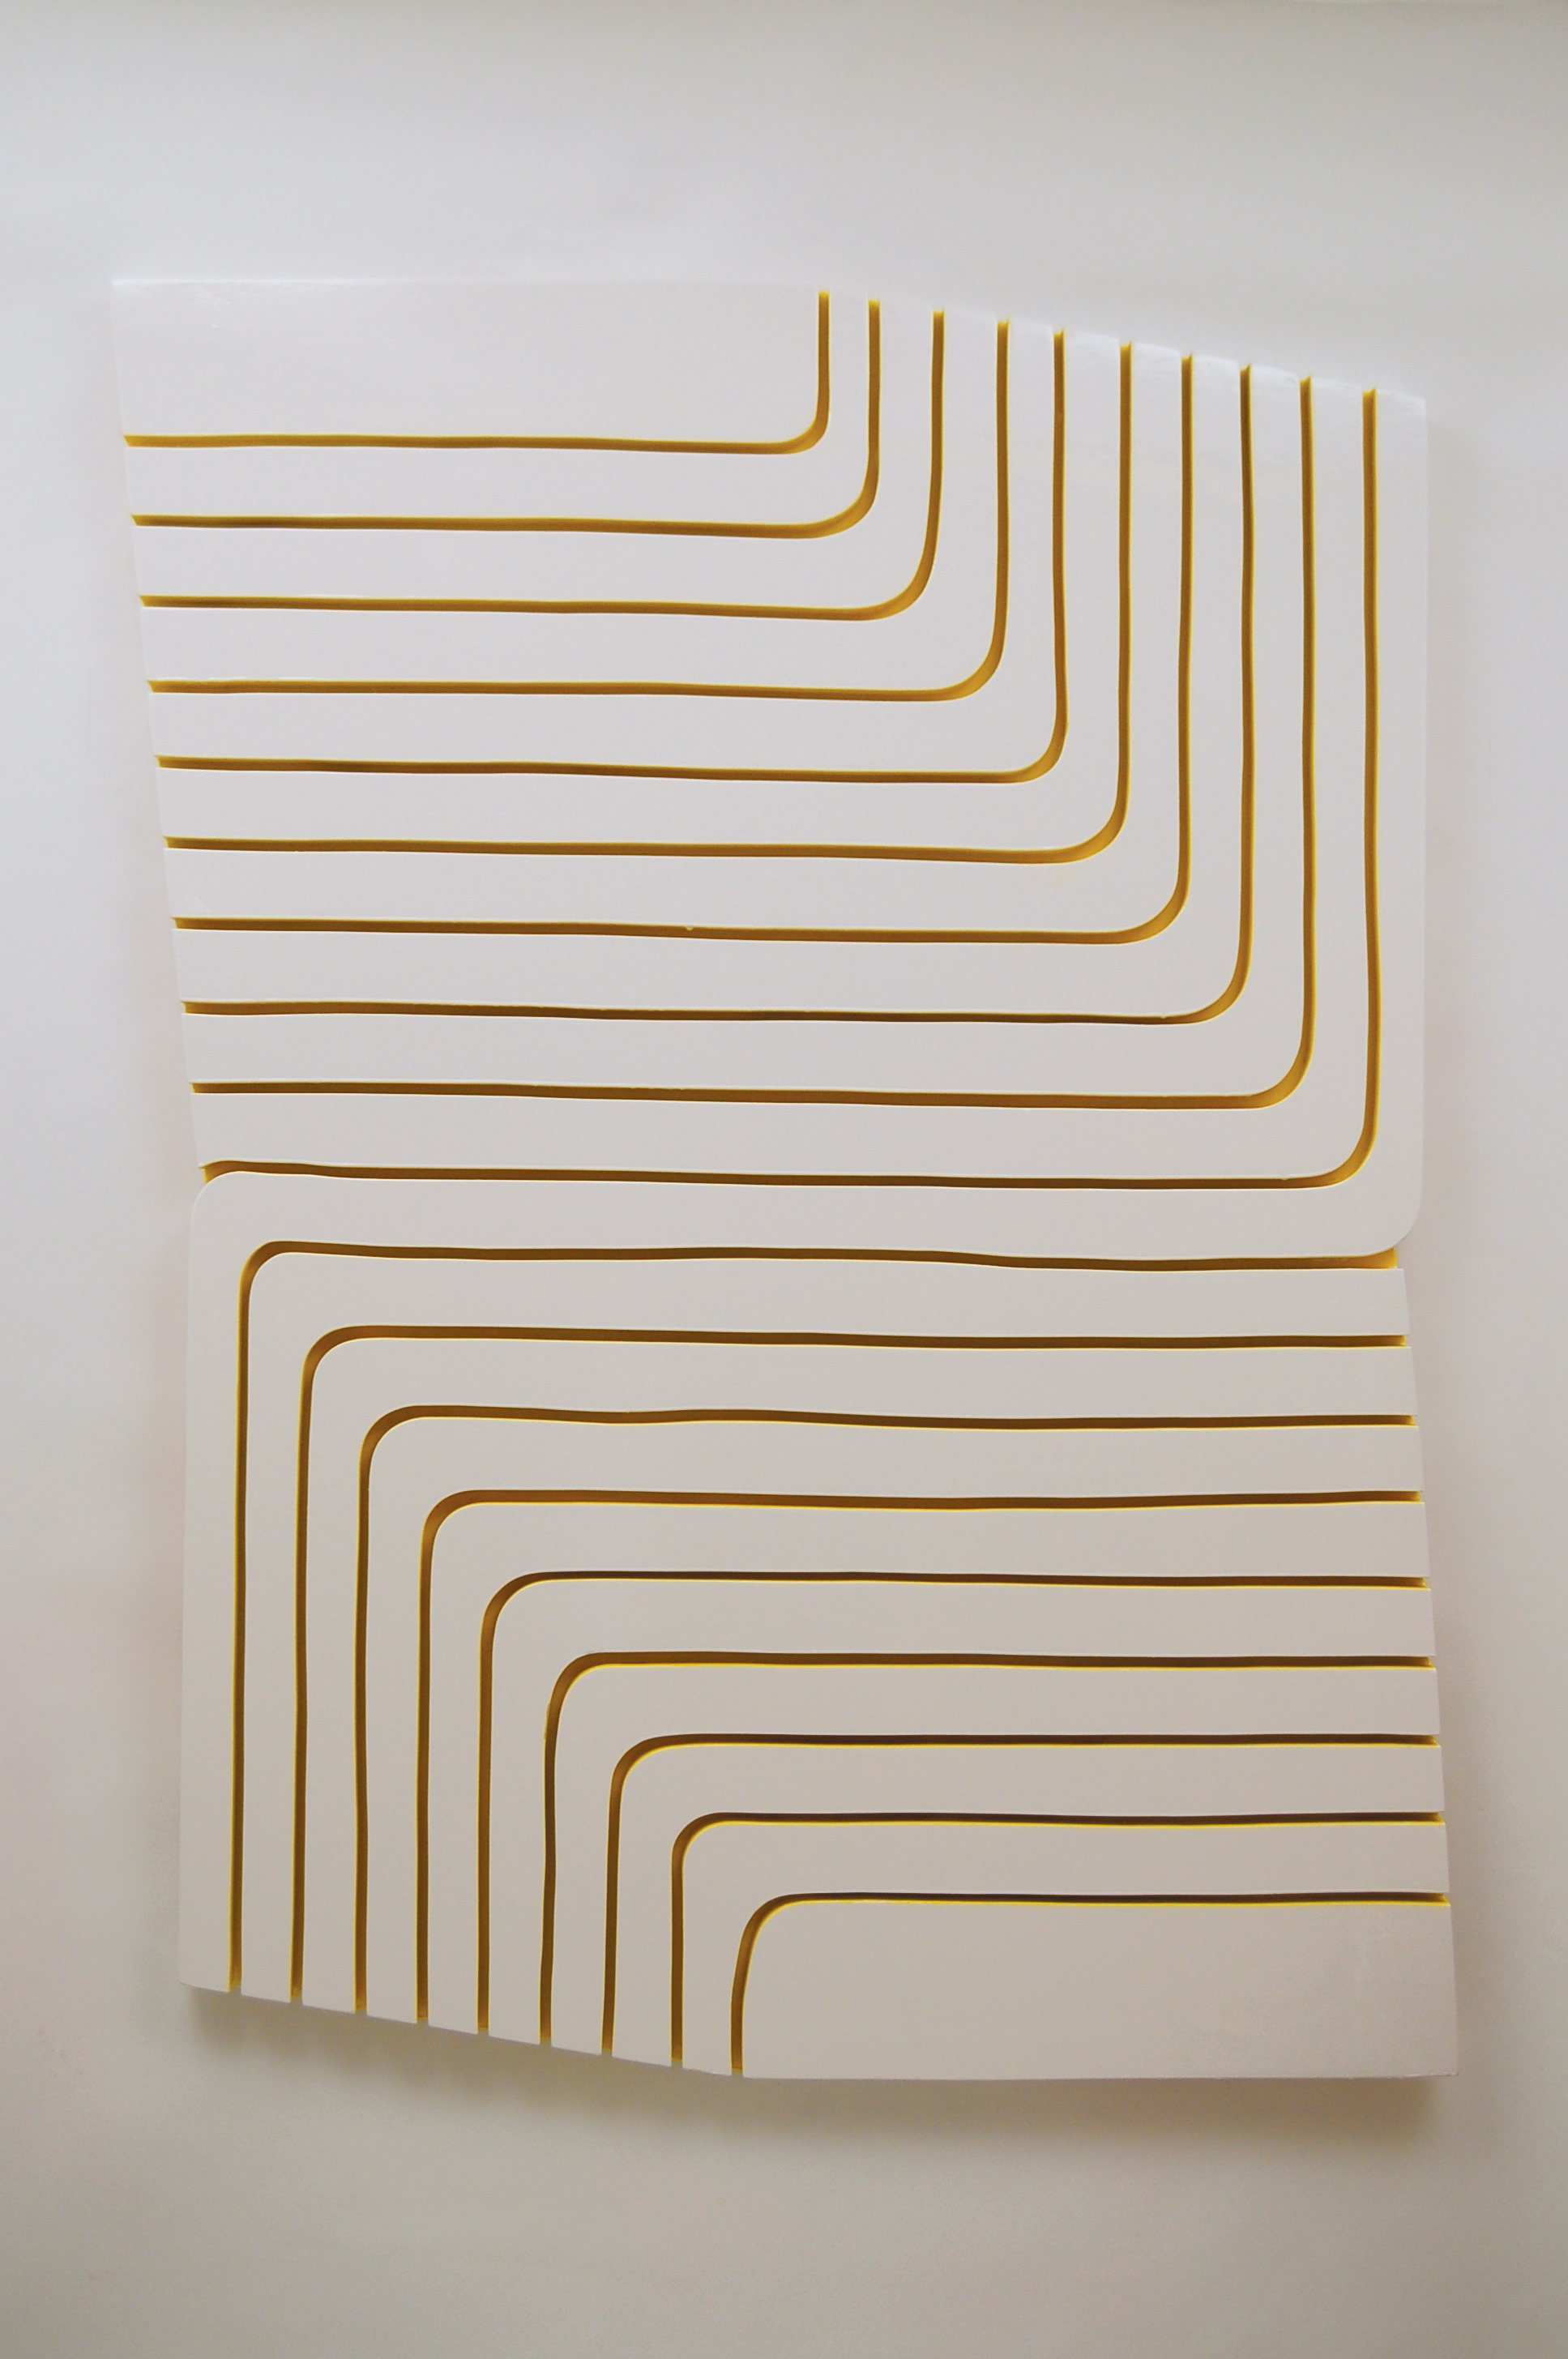 Yellow Groove, 2014   52.5 x 40 inches  enamel and acrylic paint on wood